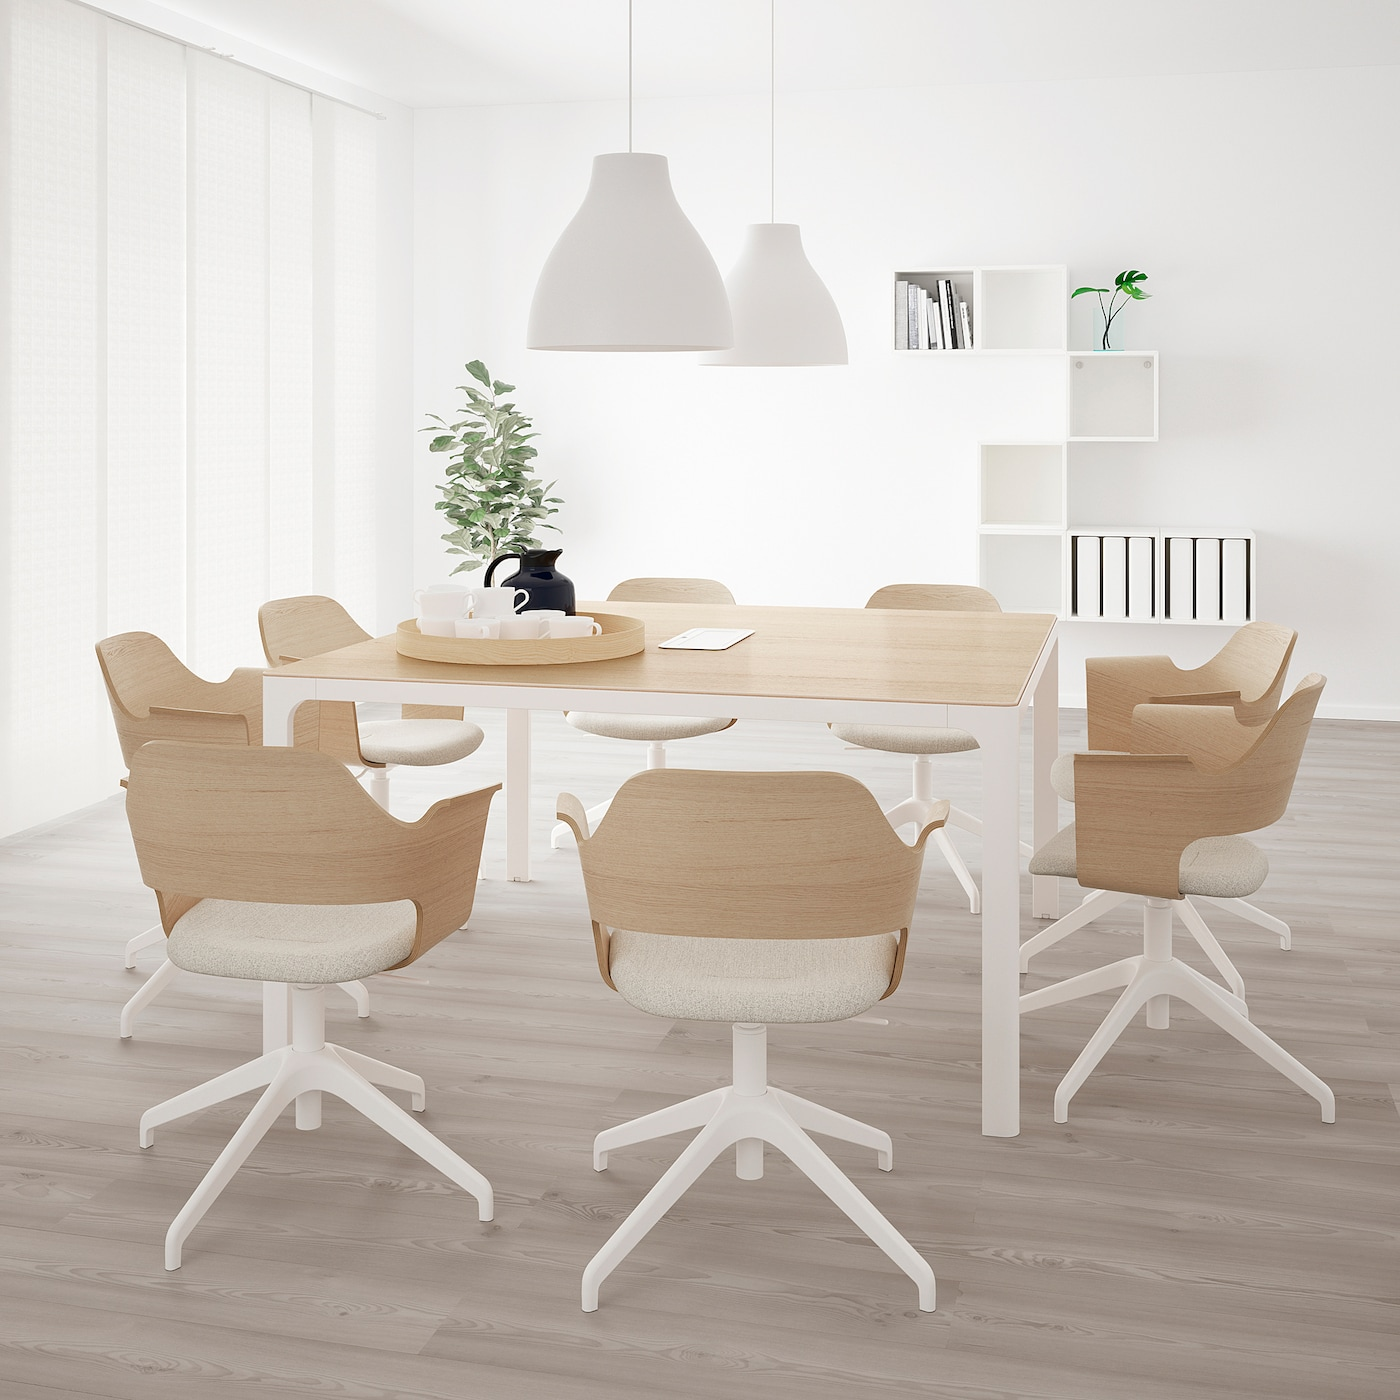 BEKANT Conference table, white stained oak veneer/white, 55 1/8x55 1/8 ""